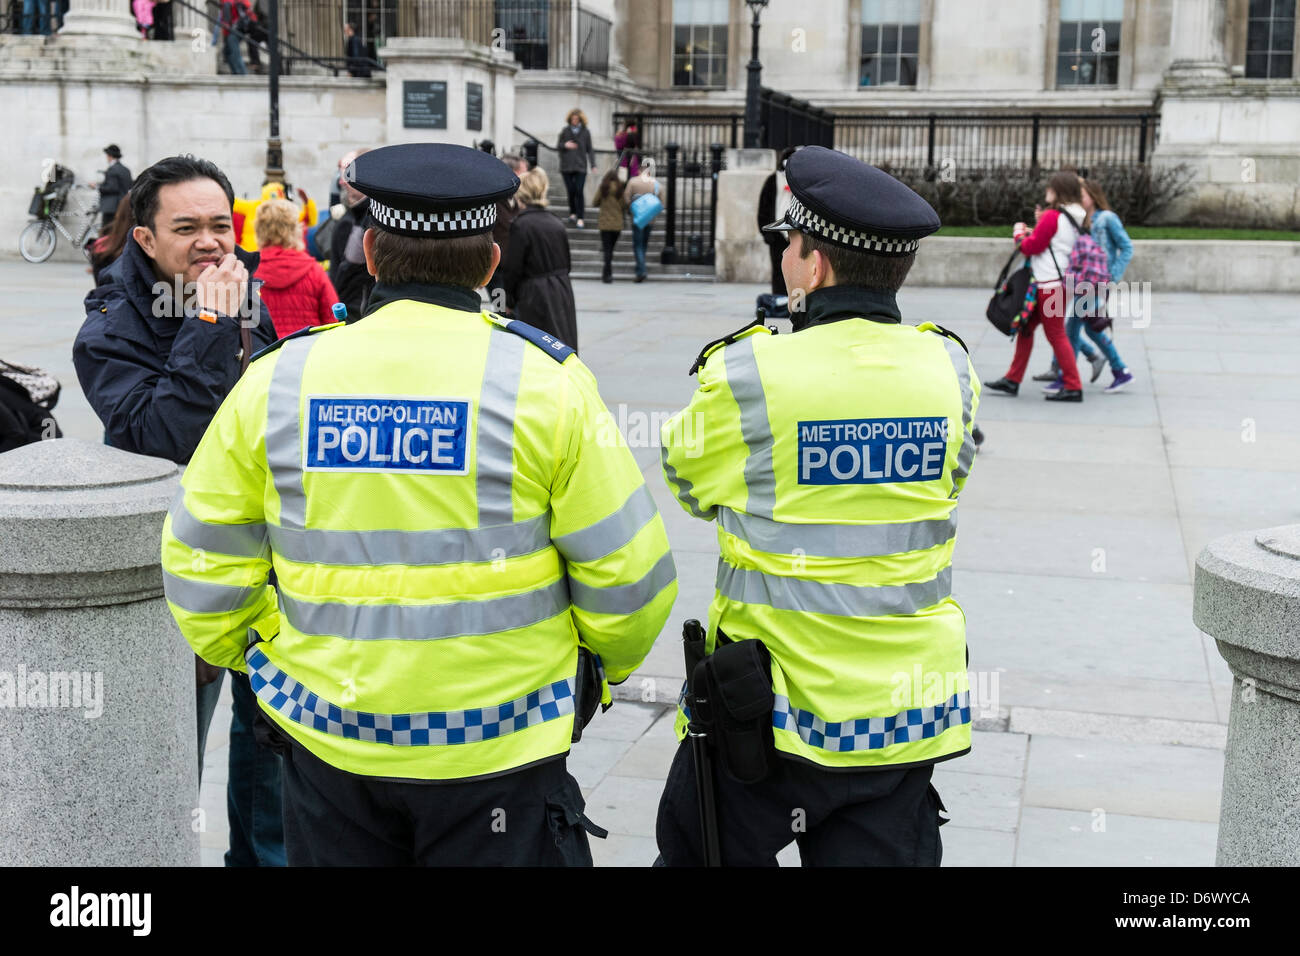 Two Metropolitan Police Officers talking to a tourist in London. - Stock Image